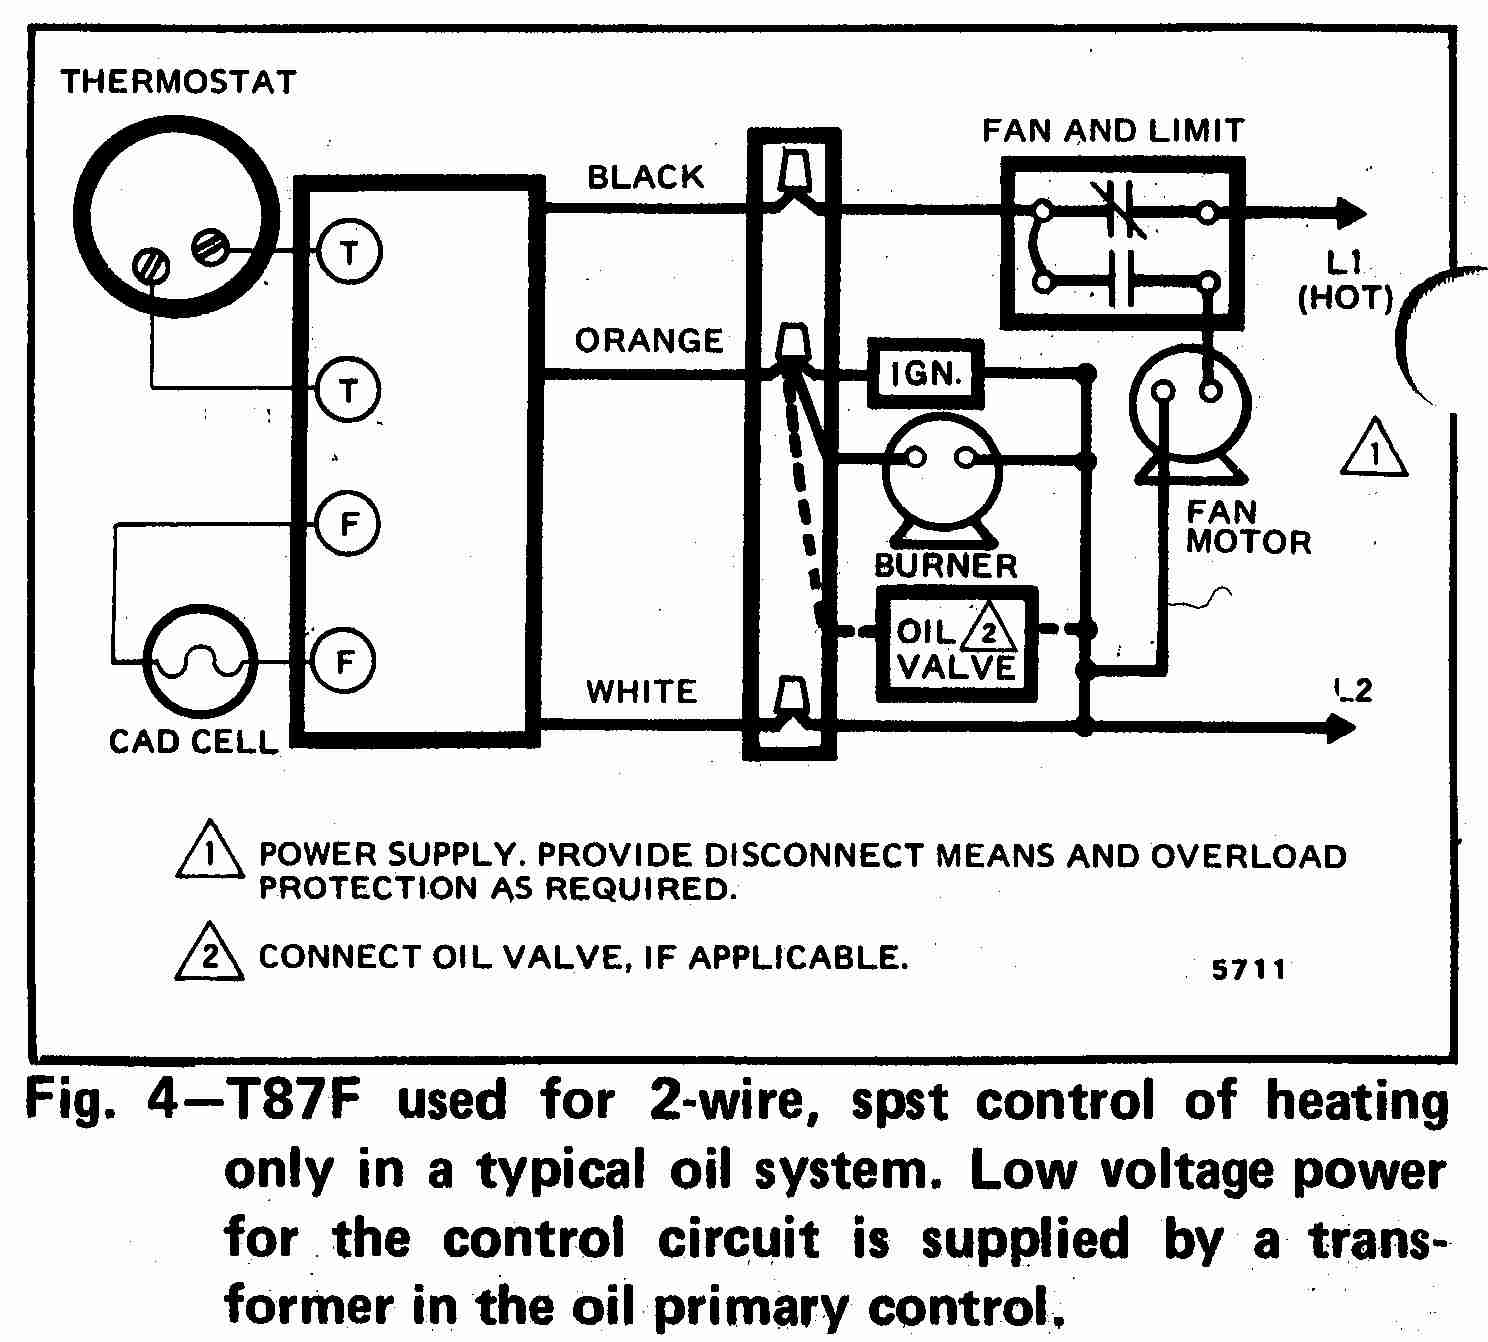 TT_T87F_0002_2W_DJF room thermostat wiring diagrams for hvac systems coleman evcon air conditioner wiring diagram at gsmportal.co